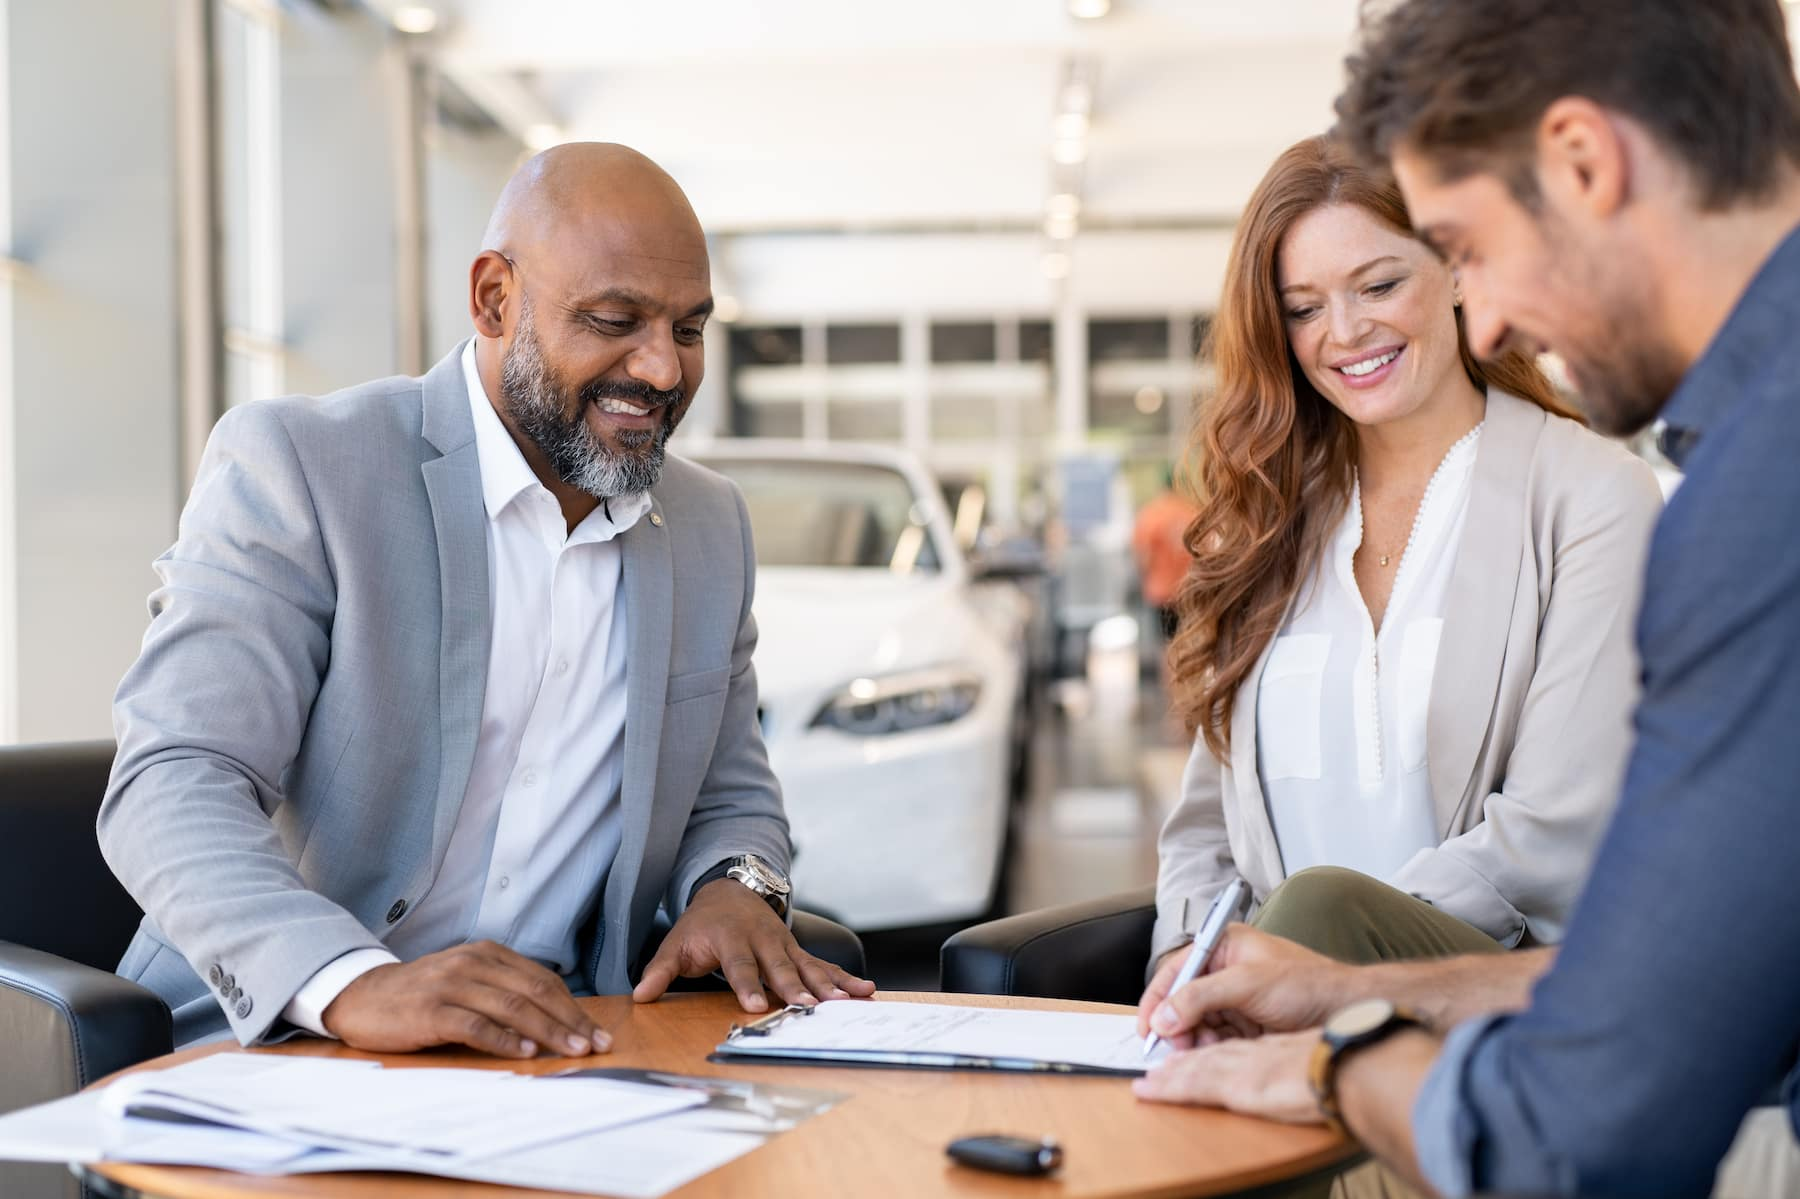 Documents to purchase a car at Boch Nissan in Norwood | Man signing documentation